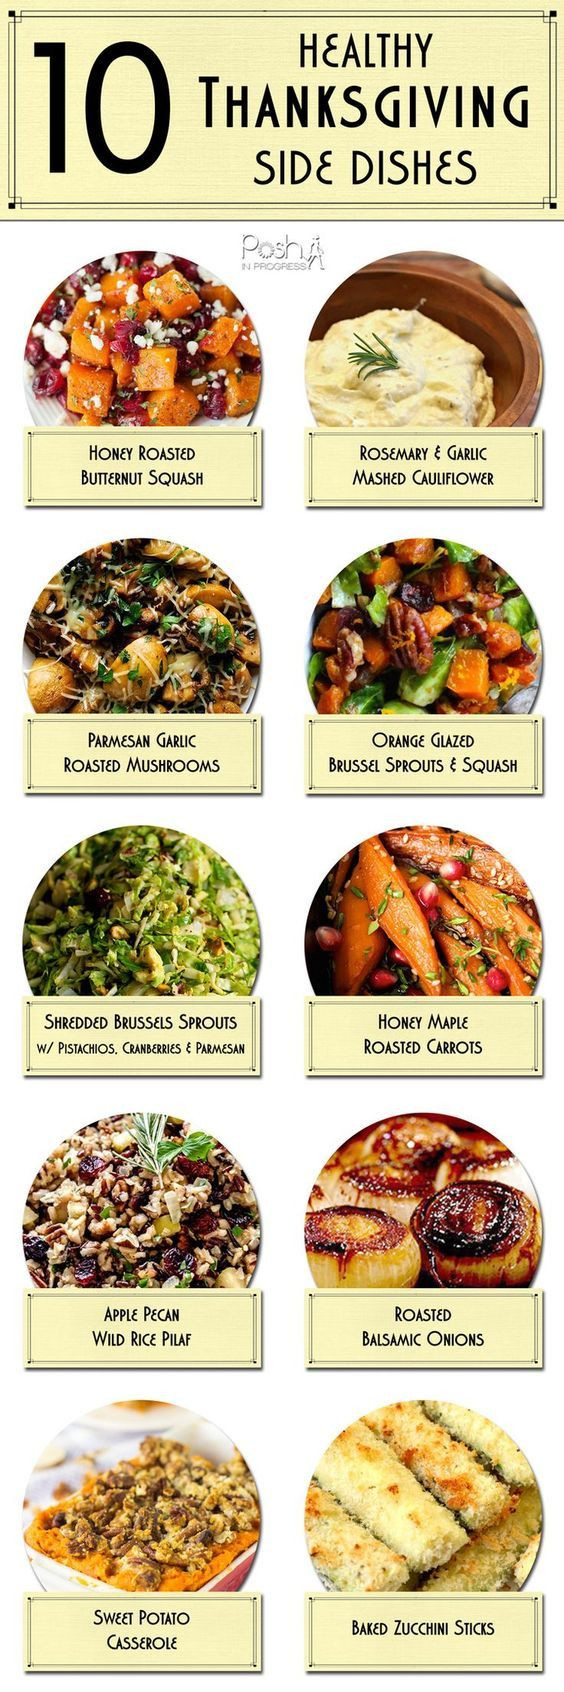 Healthy Side Dishes For Thanksgiving  TASTY TUESDAY 10 Healthy Thanksgiving Side Dishes